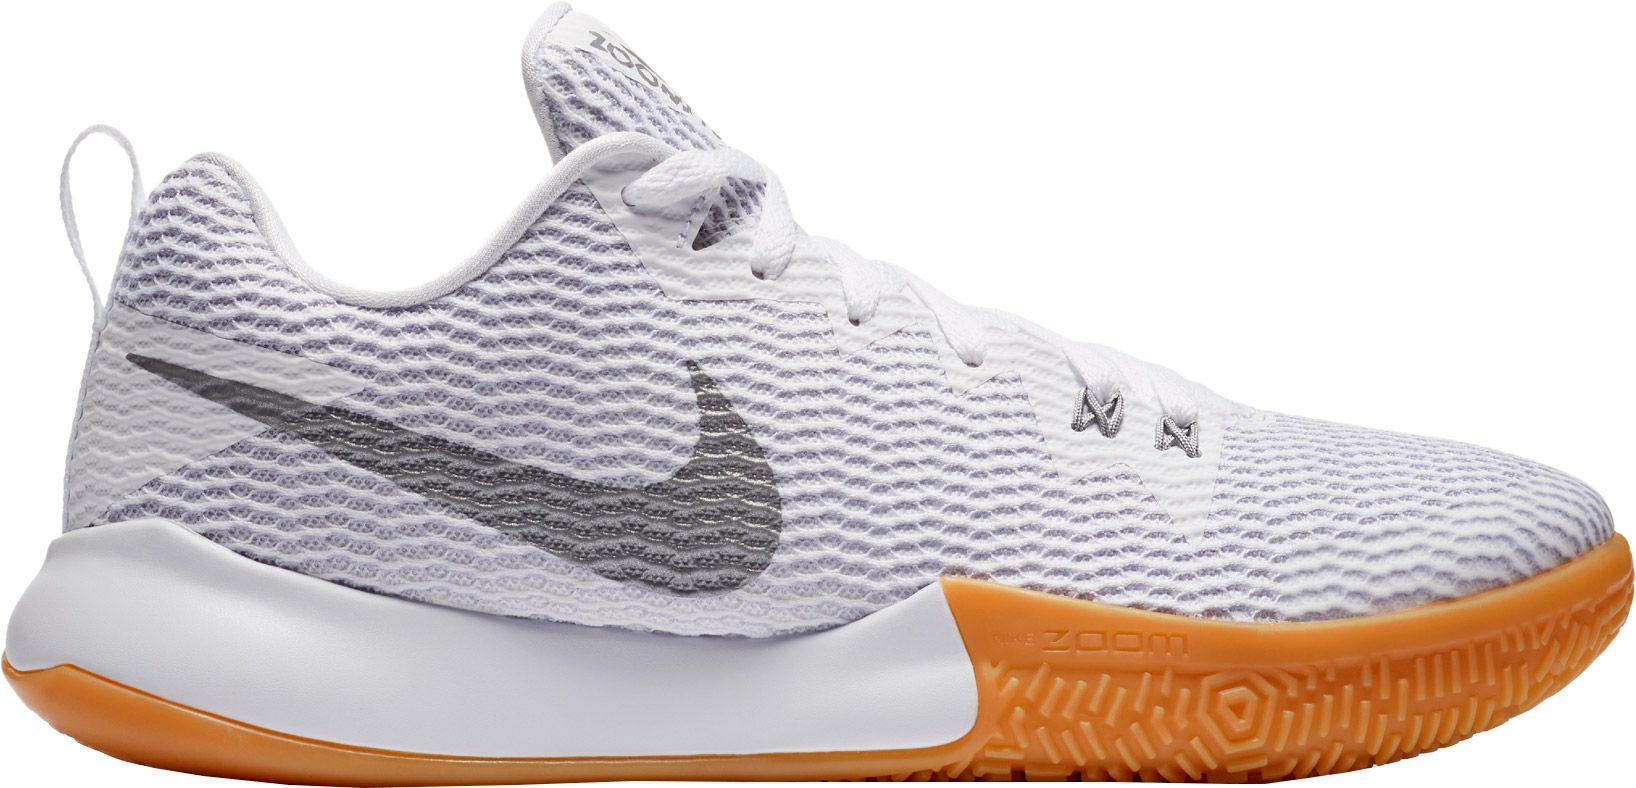 1ae542035527 Lyst - Nike Zoom Live Ii Basketball Shoes in White for Men